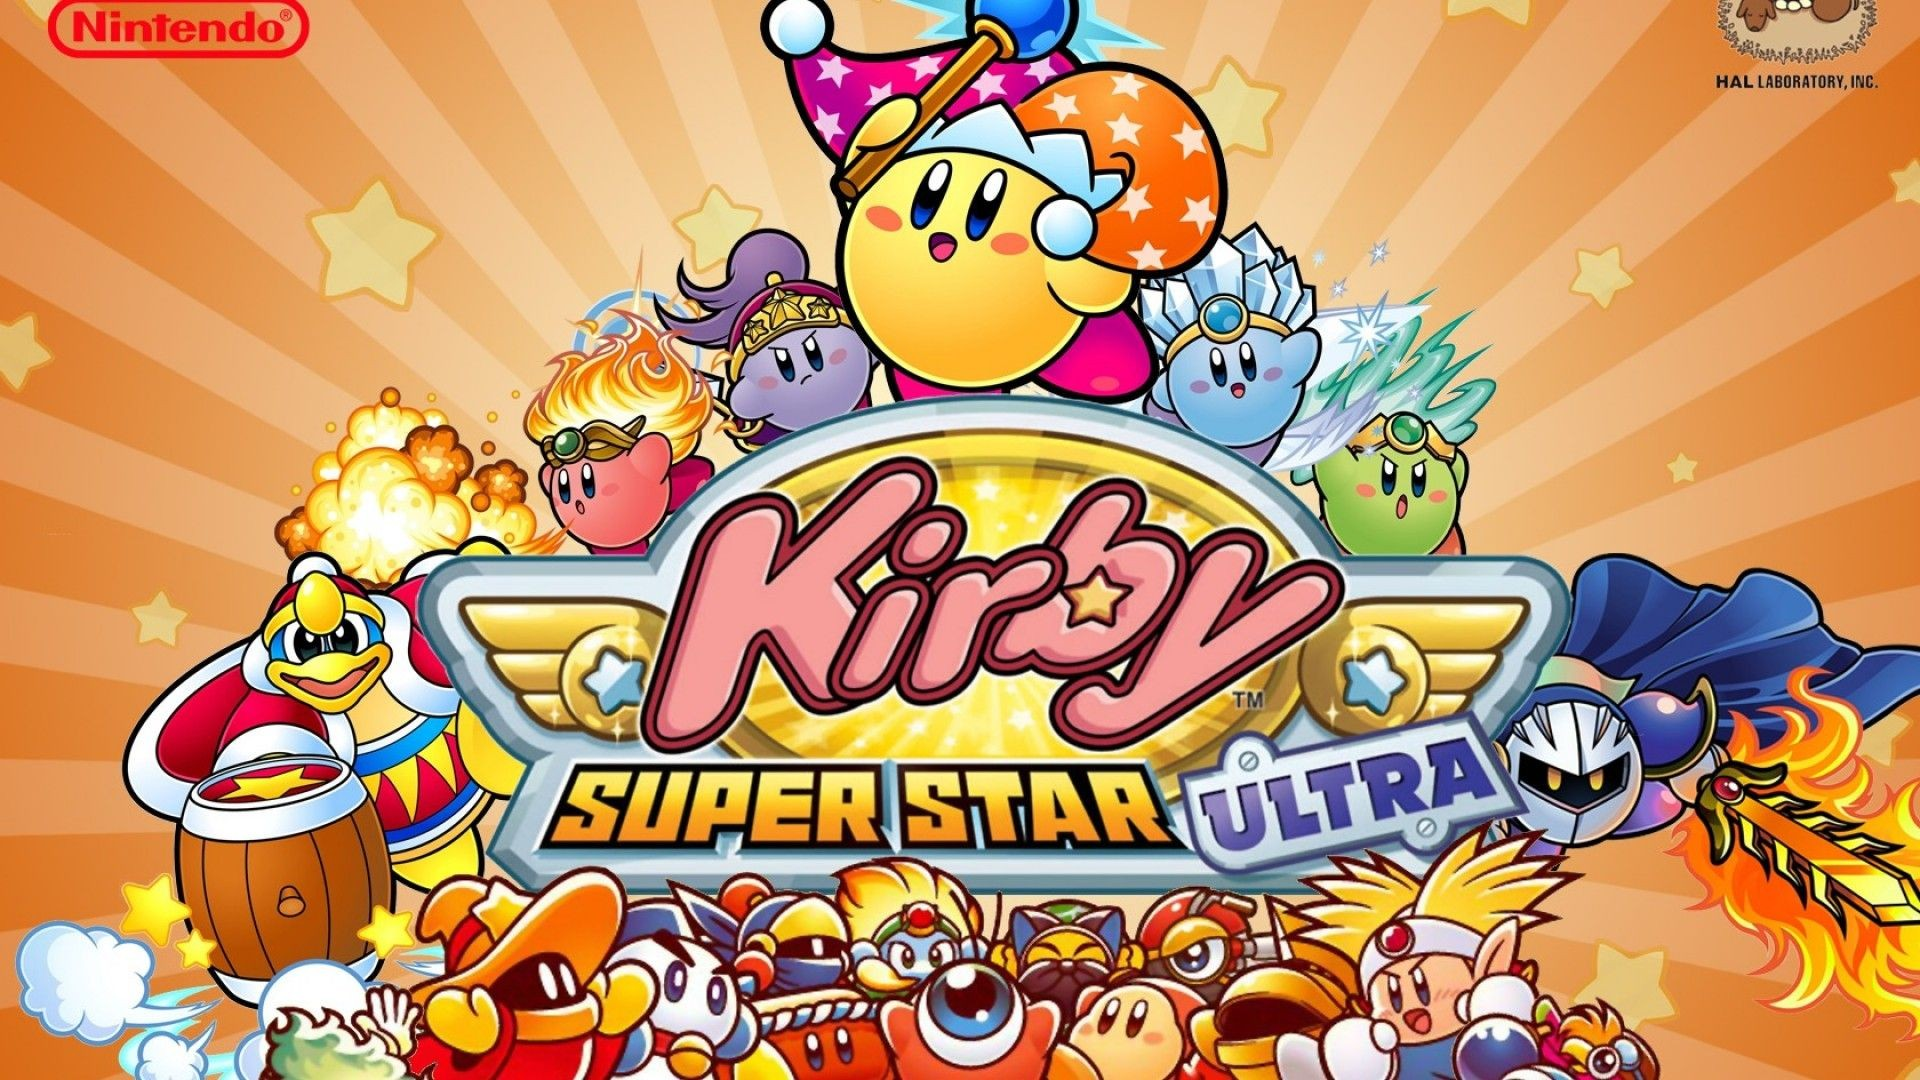 HD Kirby Backgrounds Images HD Wallpapers Background Photos Tablet 1920x1080